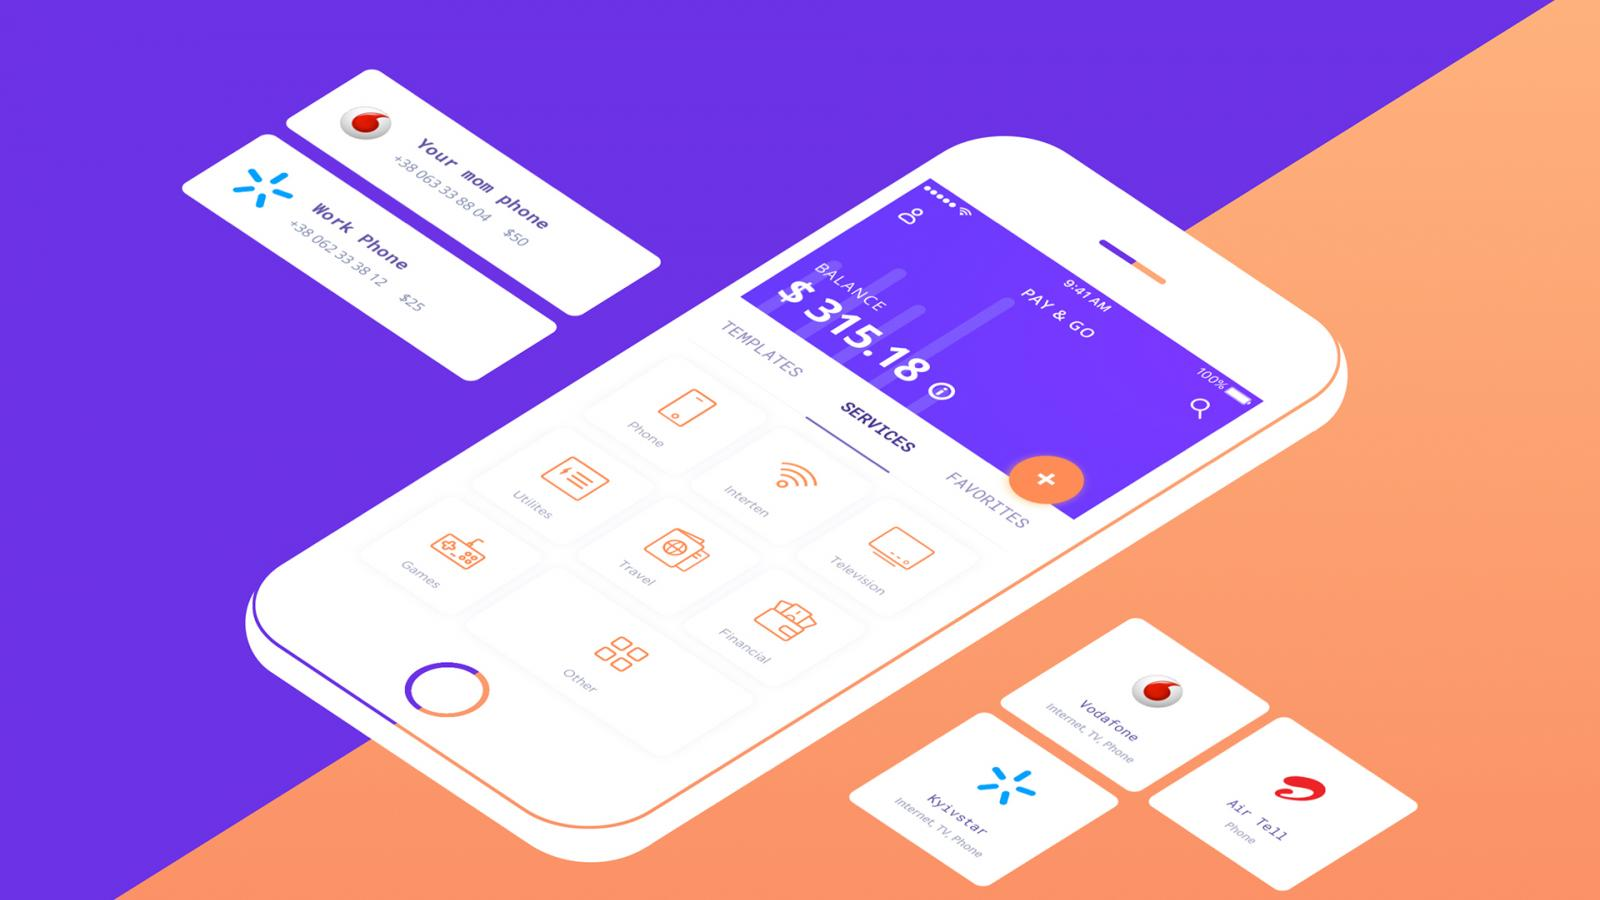 Mobile Application & UI/UX: A look at Pay & Go Wallet App